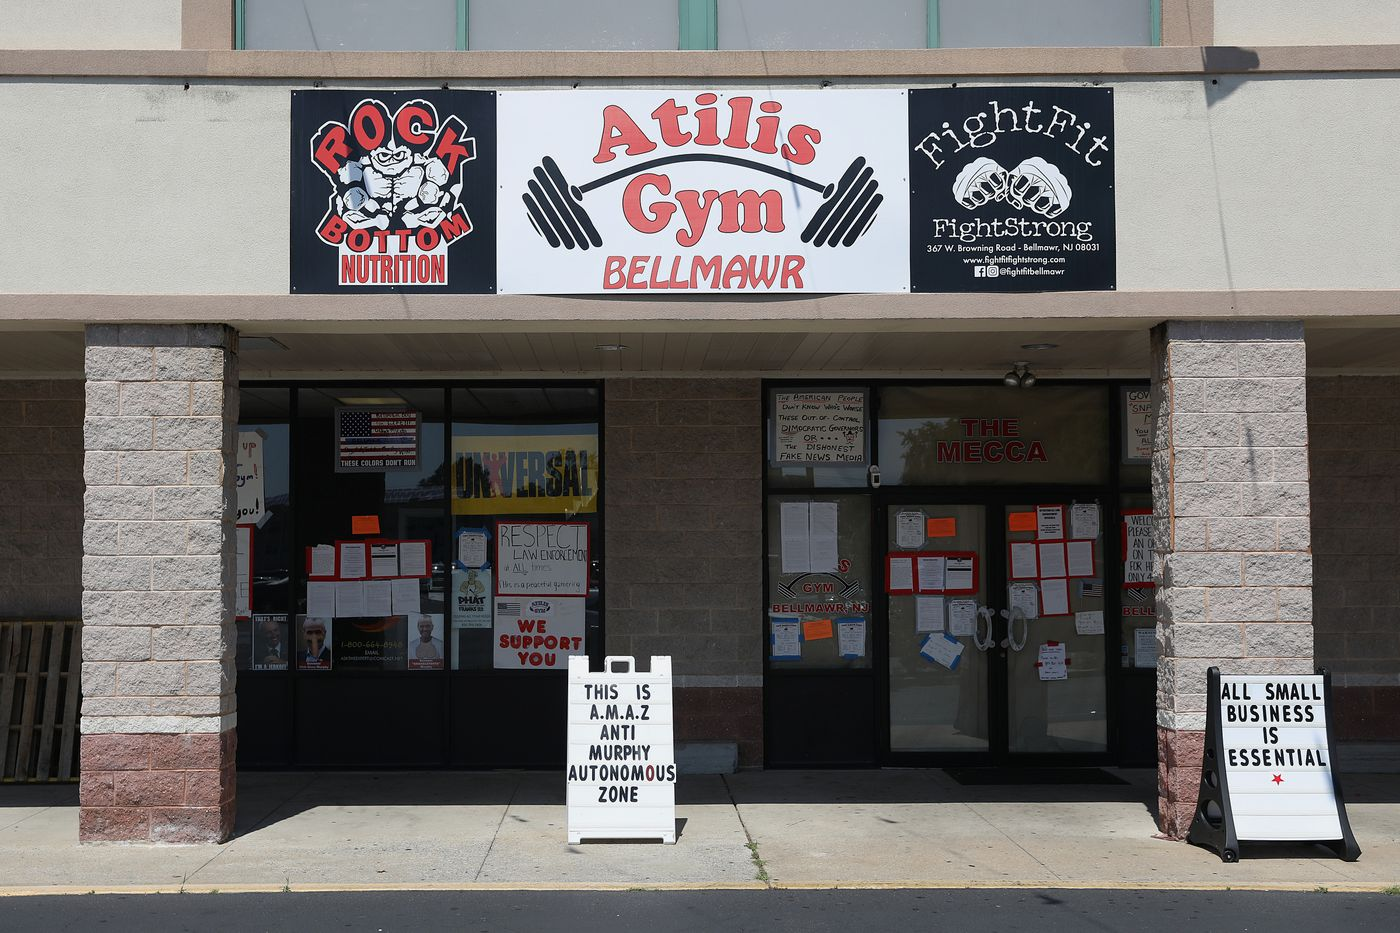 Atilis Gym has reopened against New Jersey's coronavirus restrictions and is allowing up to 70 members inside at a time, but a judge denied Monday the state's request to hold its owners in contempt of court, instead ordering the gym to comply with tighter limitations on gym usage.